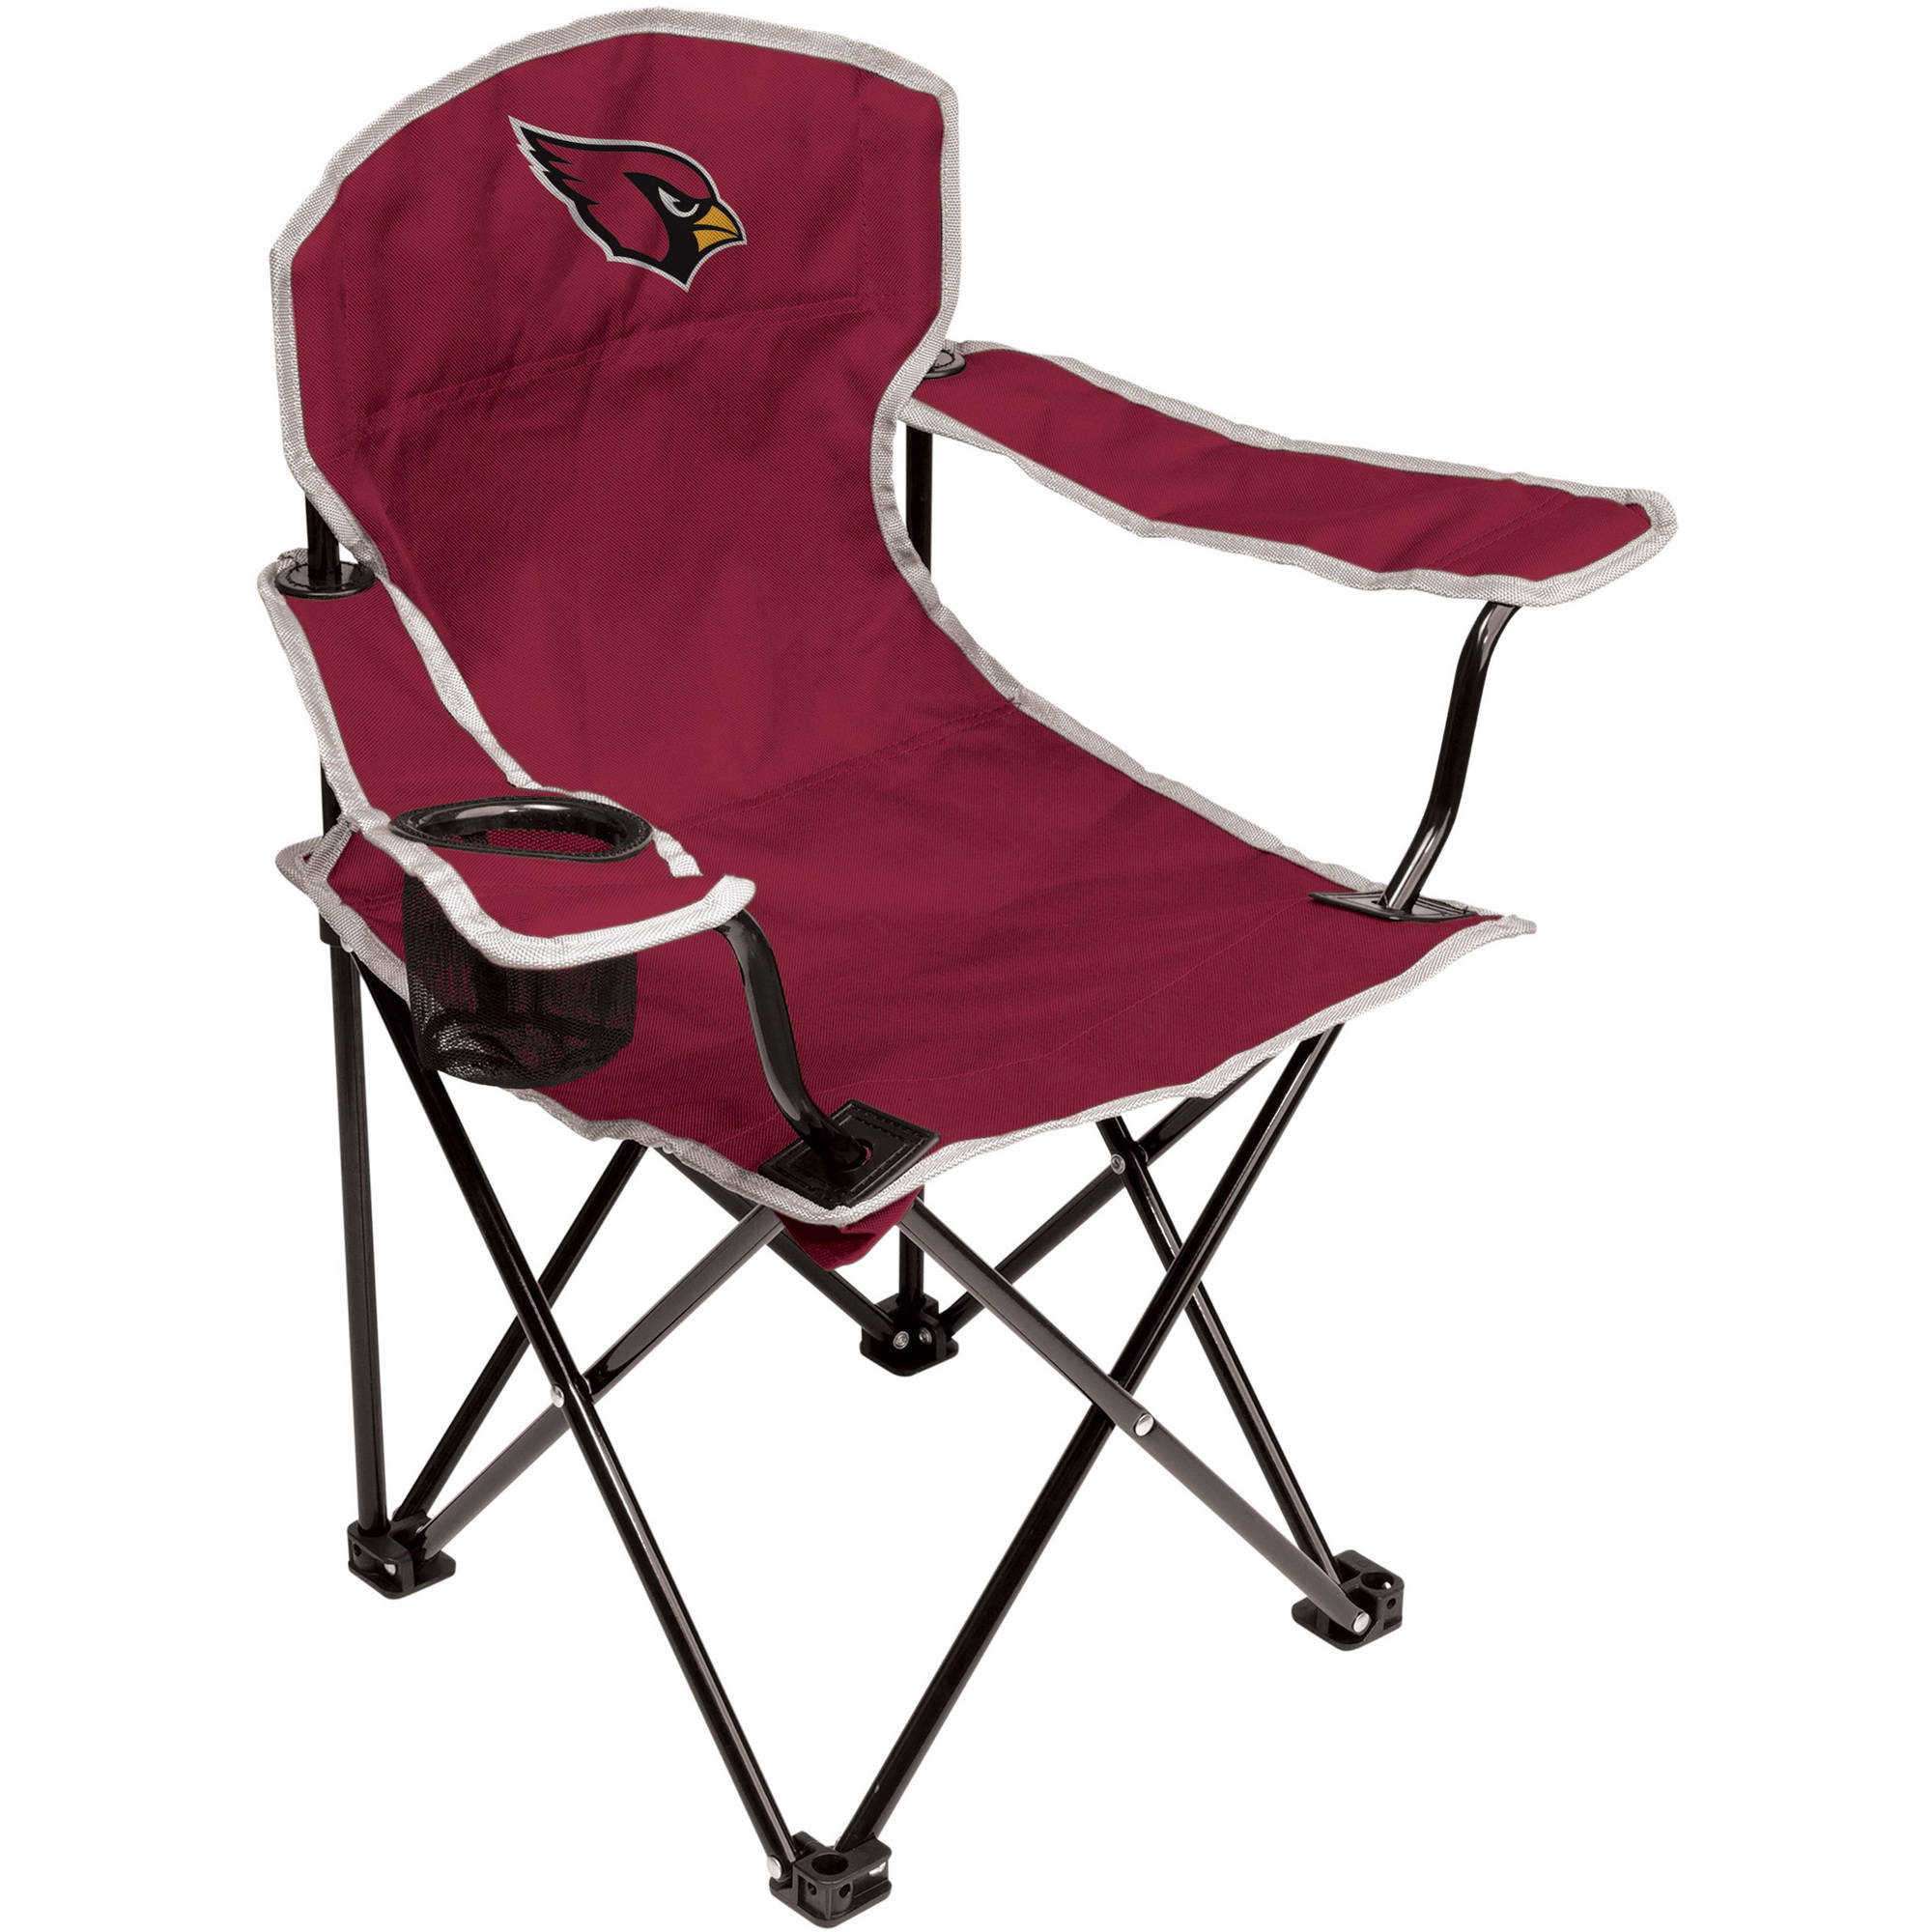 NFL Arizona Cardinals Youth Size Tailgate Chair from Coleman by Rawlings